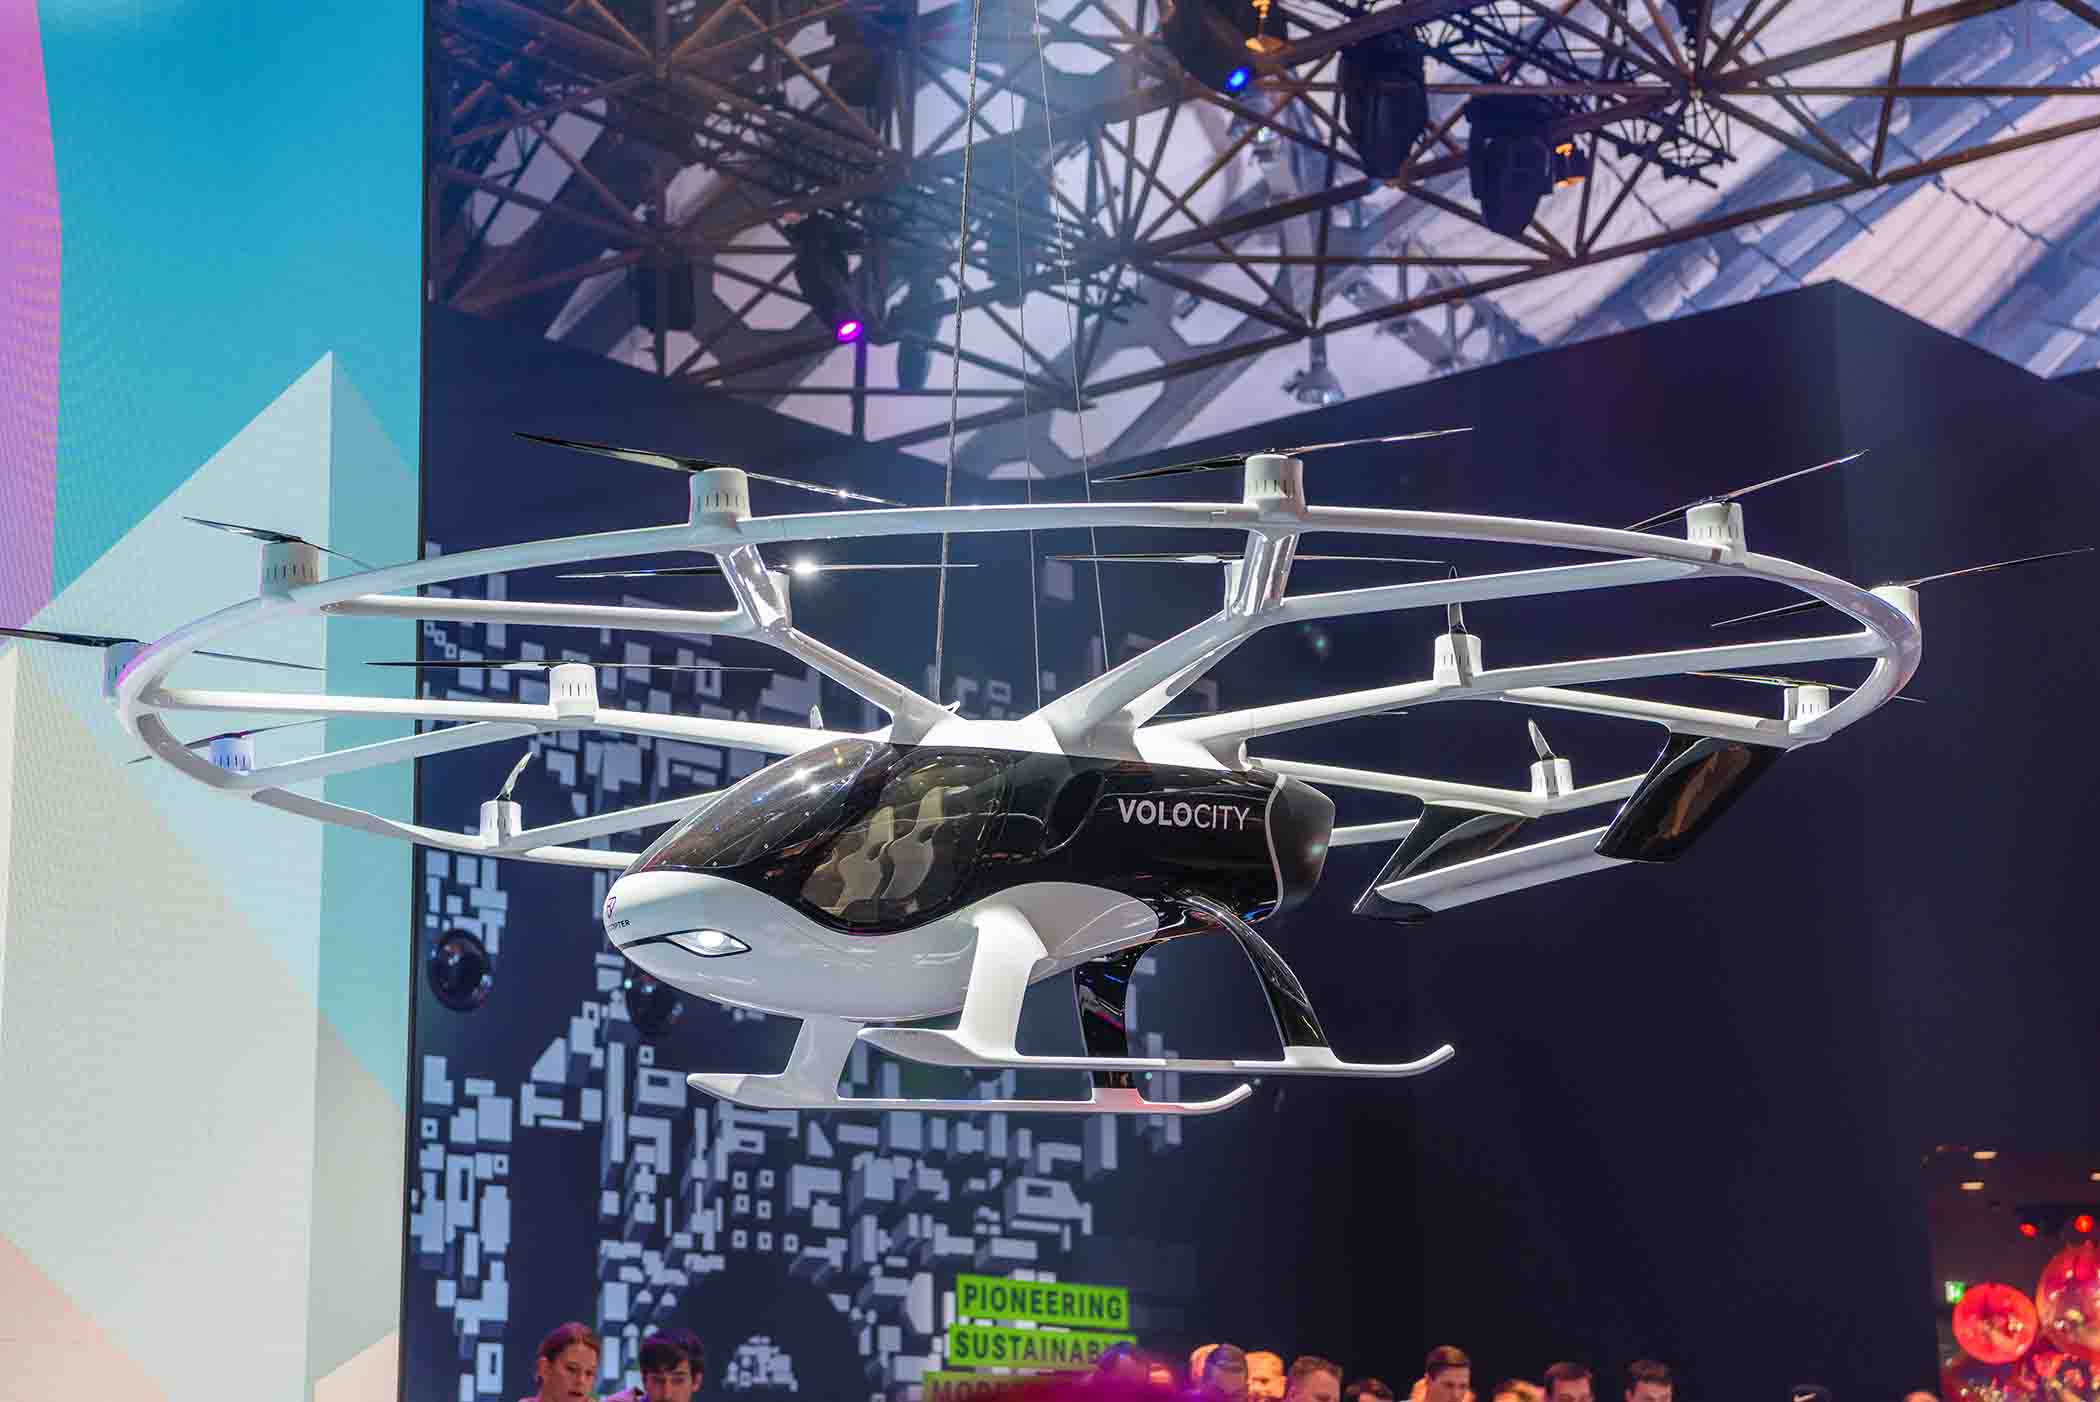 startup Volocopter